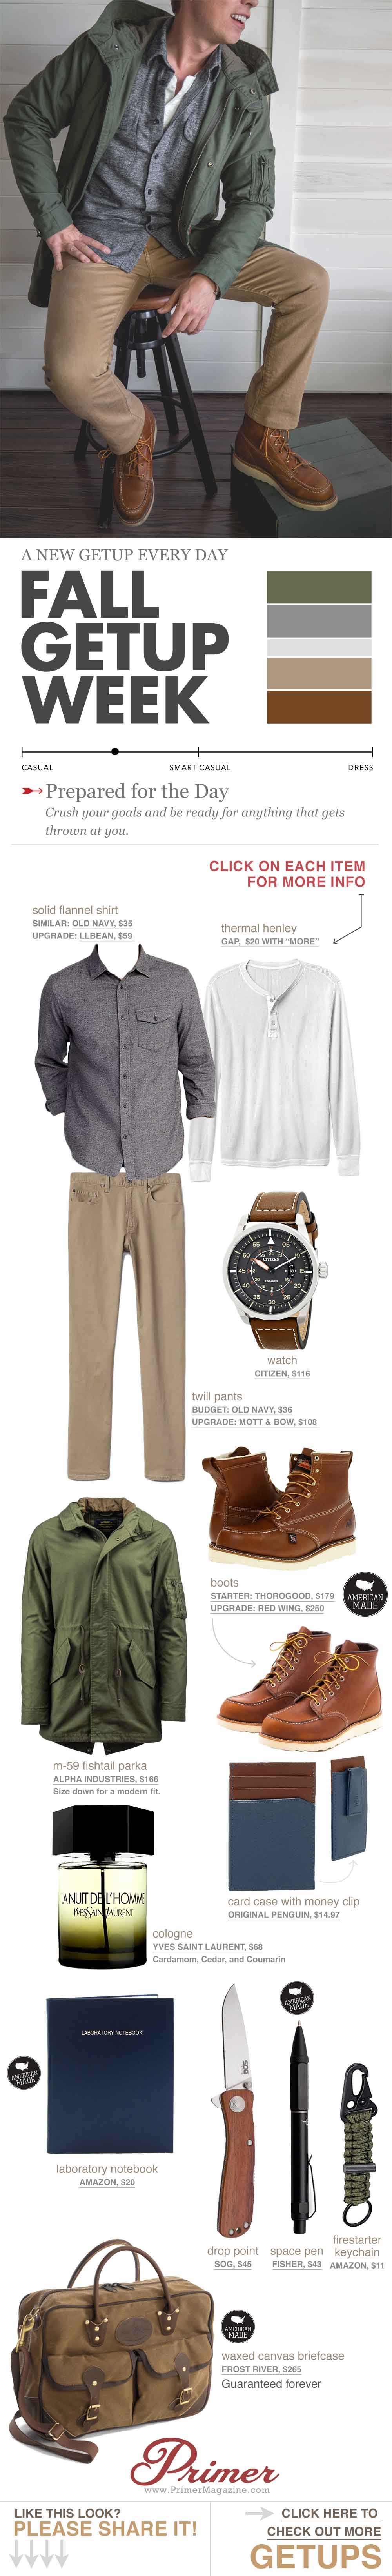 men's fall fashion inspiraiton rugged outfit - flannel with henley and boots